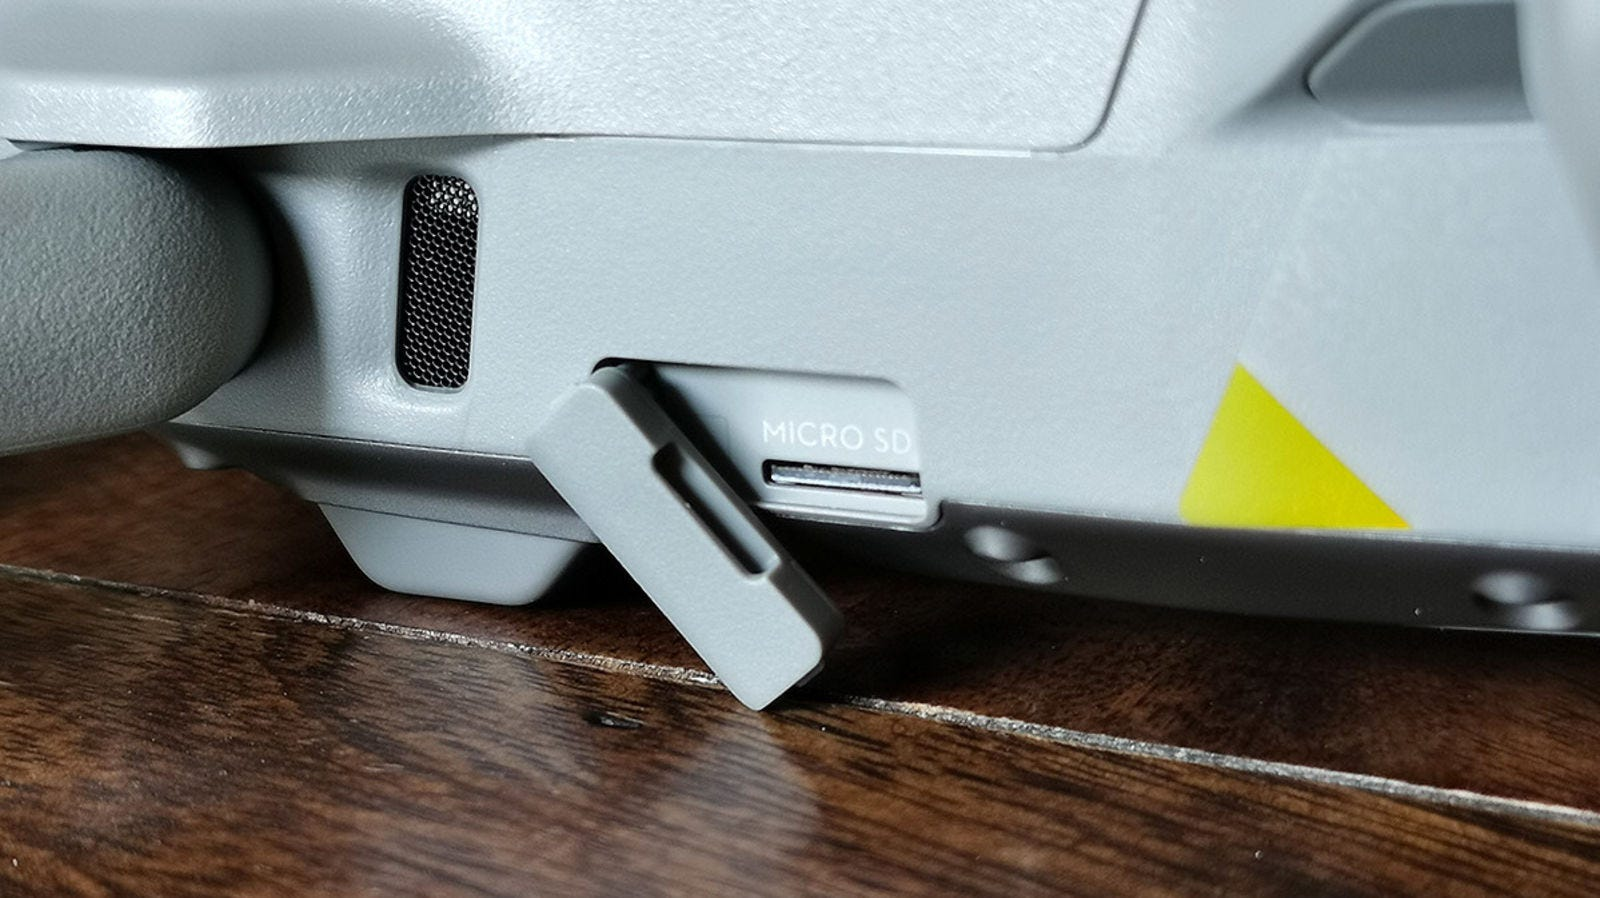 There are no sensors on the sides. This is a slot for the microSD cards. It can be used with cards of up to 256 GB.